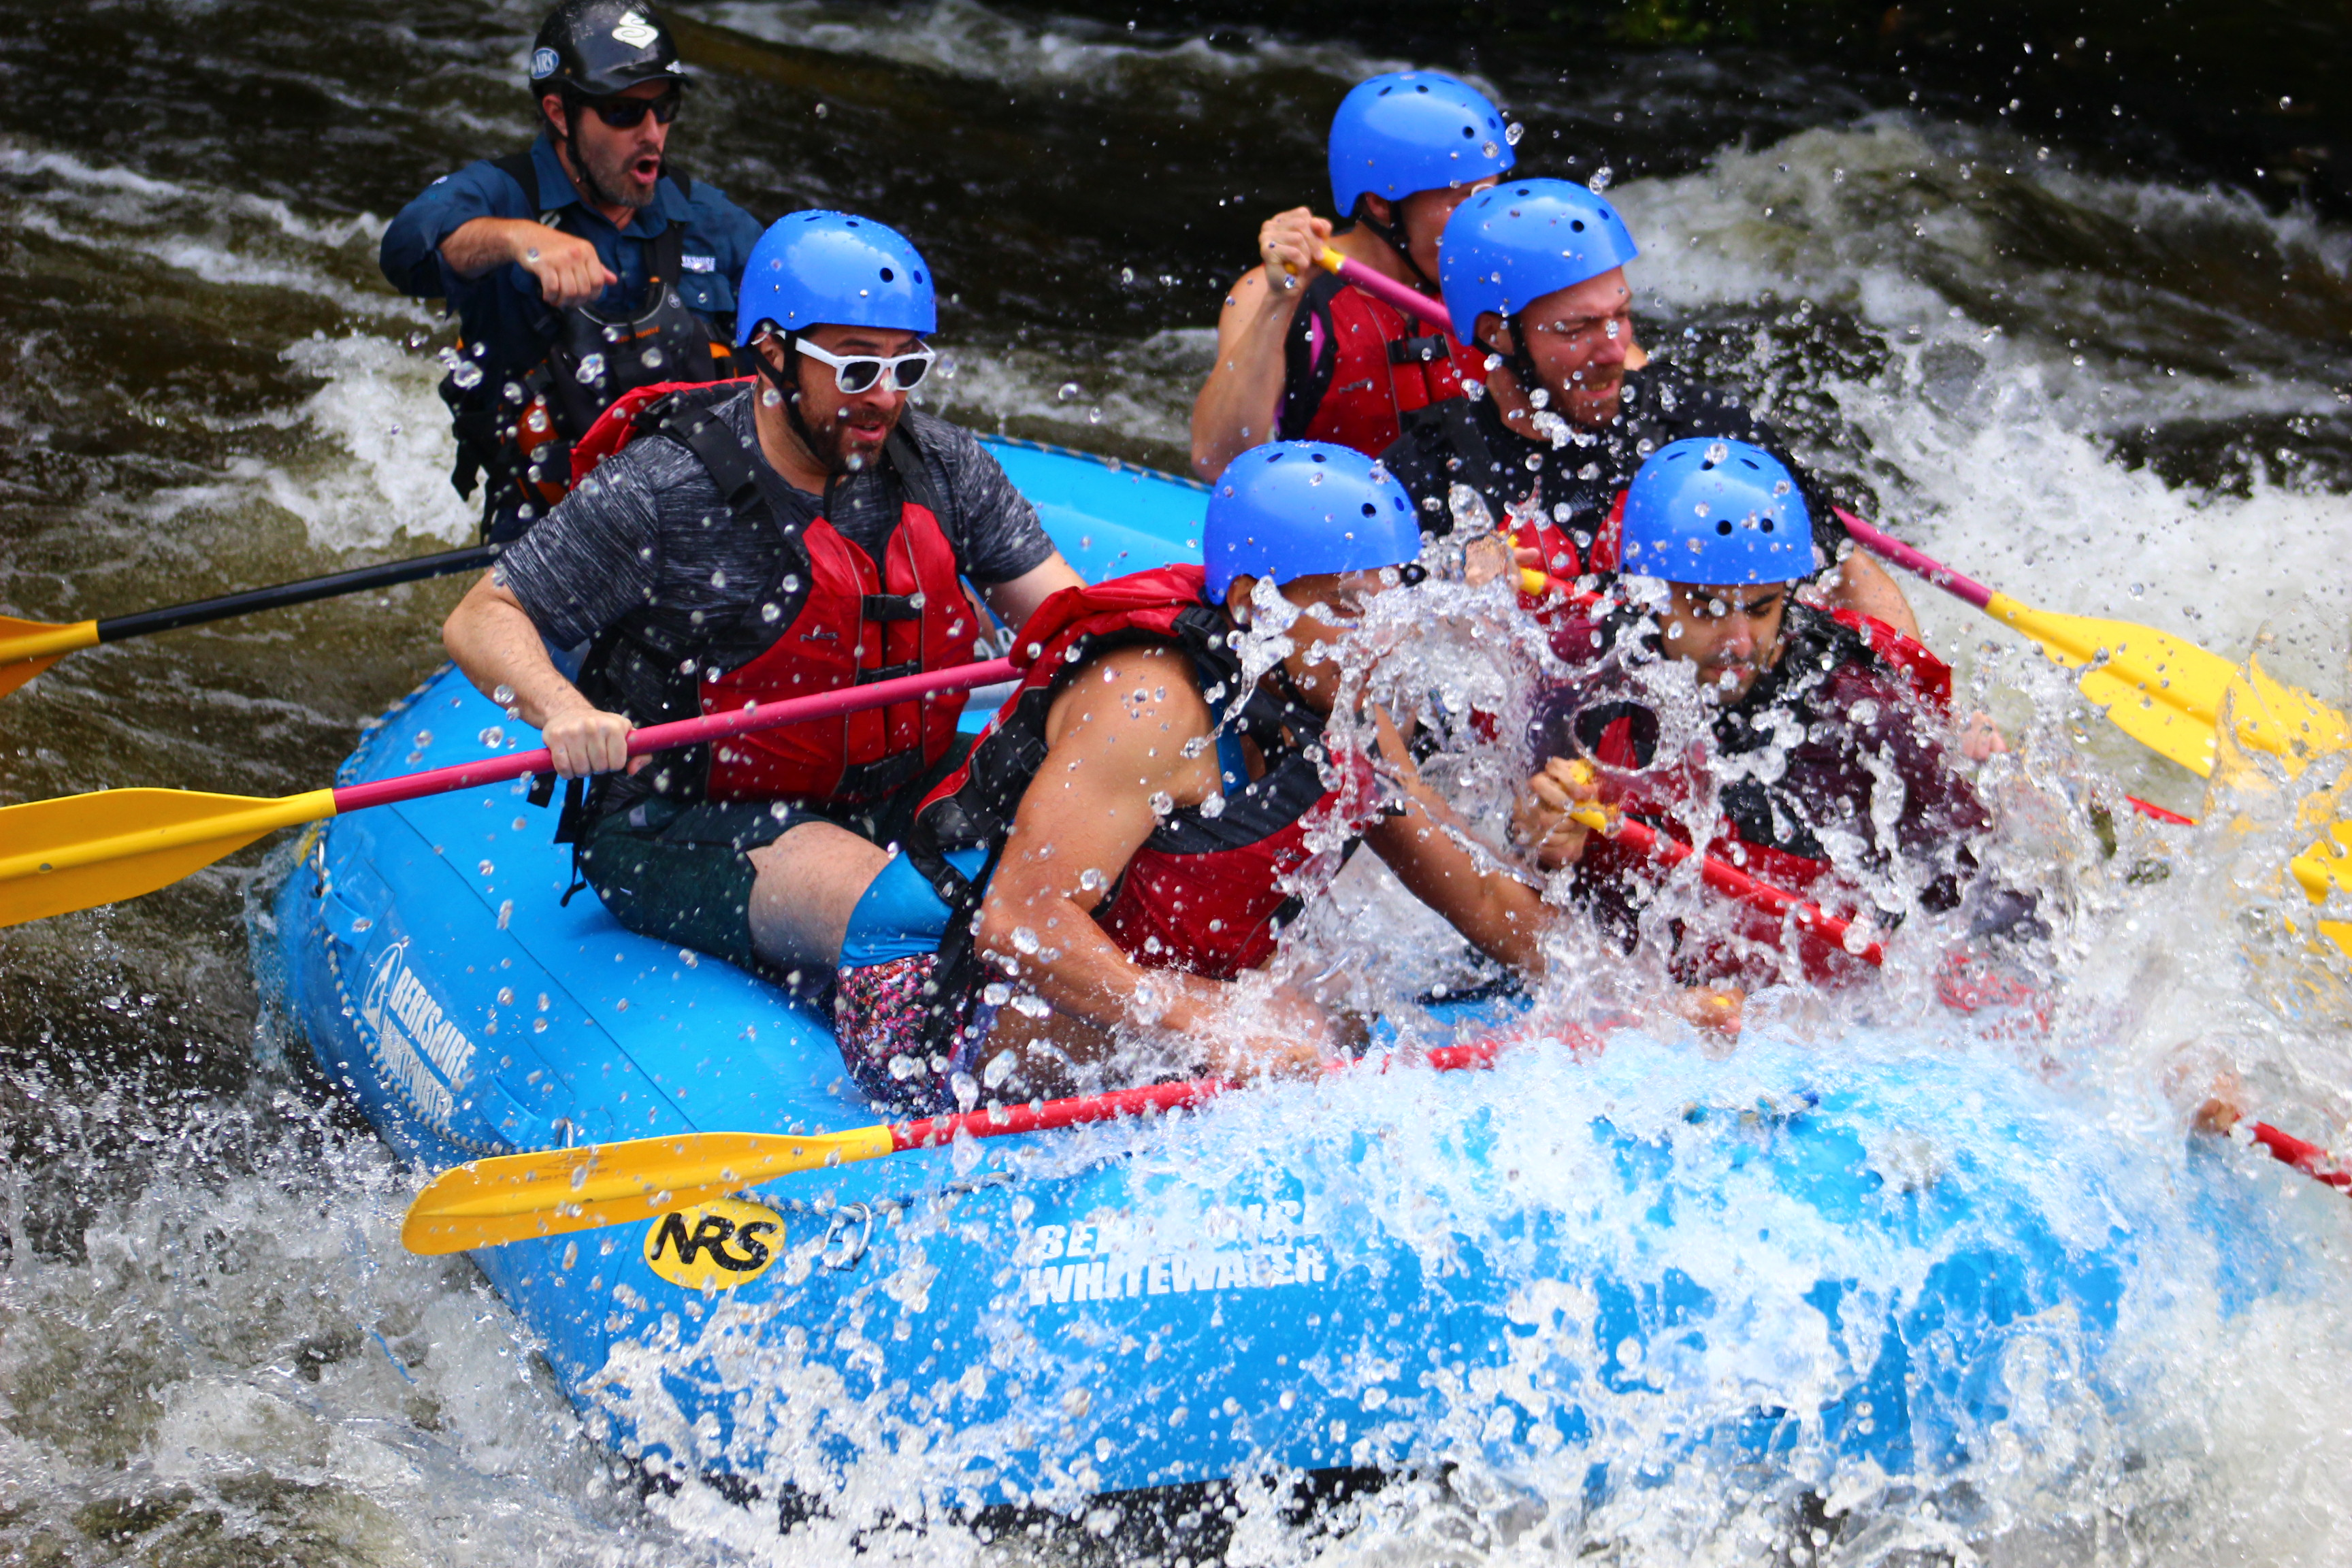 Get Out and Trek members rafting down the Deerfield River, Massachusetts. [Photo] Courtesy of GOAT